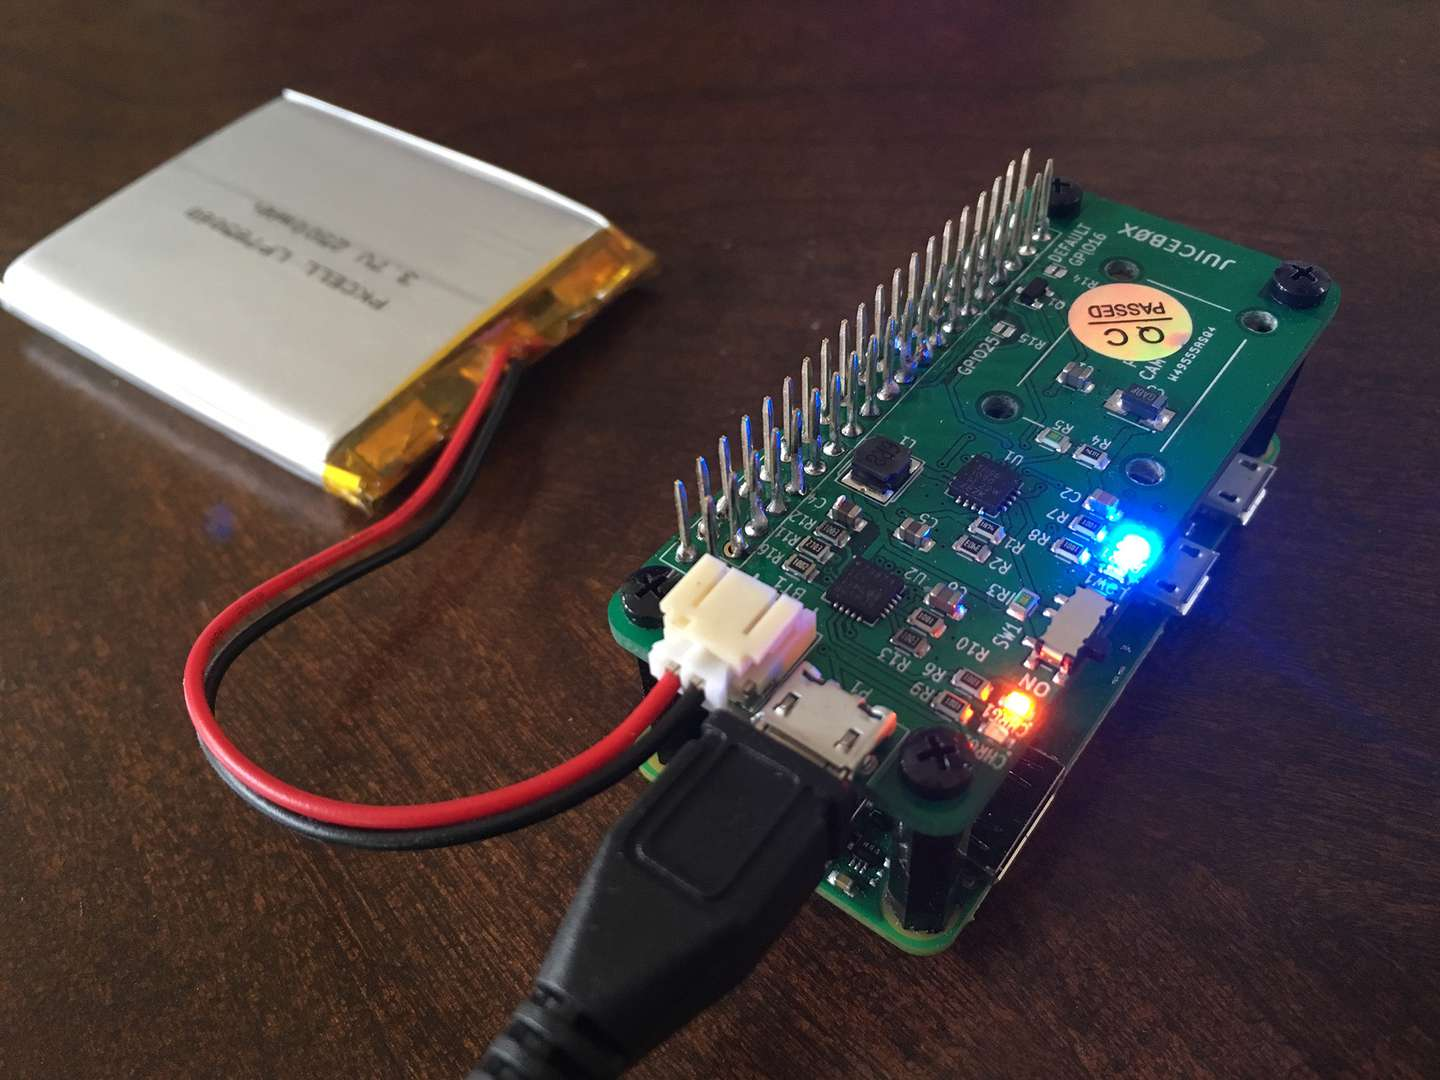 Power your Raspberry Pi Zero with a battery using the JuiceBox Zero